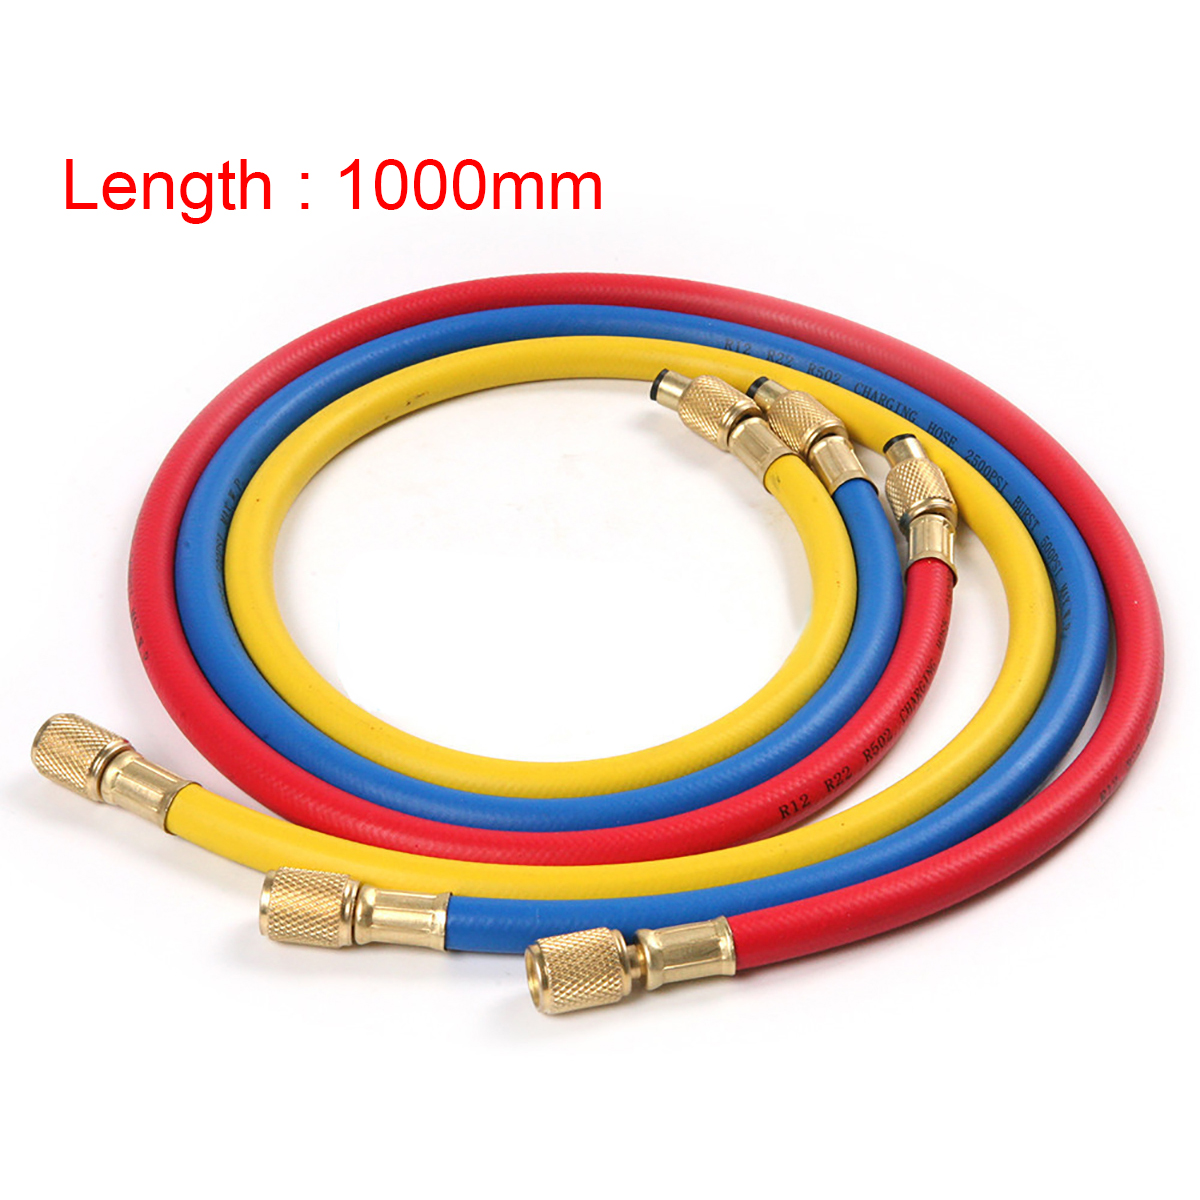 3pcs Refrigeration Charging Hose Practical High Pressure Automobile Air Conditioner Hose For Car R12 R22 R502 Refrigerant Mayitr hs 1221 hs 1222 r410a refrigeration charging adapter refrigerant retention control valve air conditioning charging valve